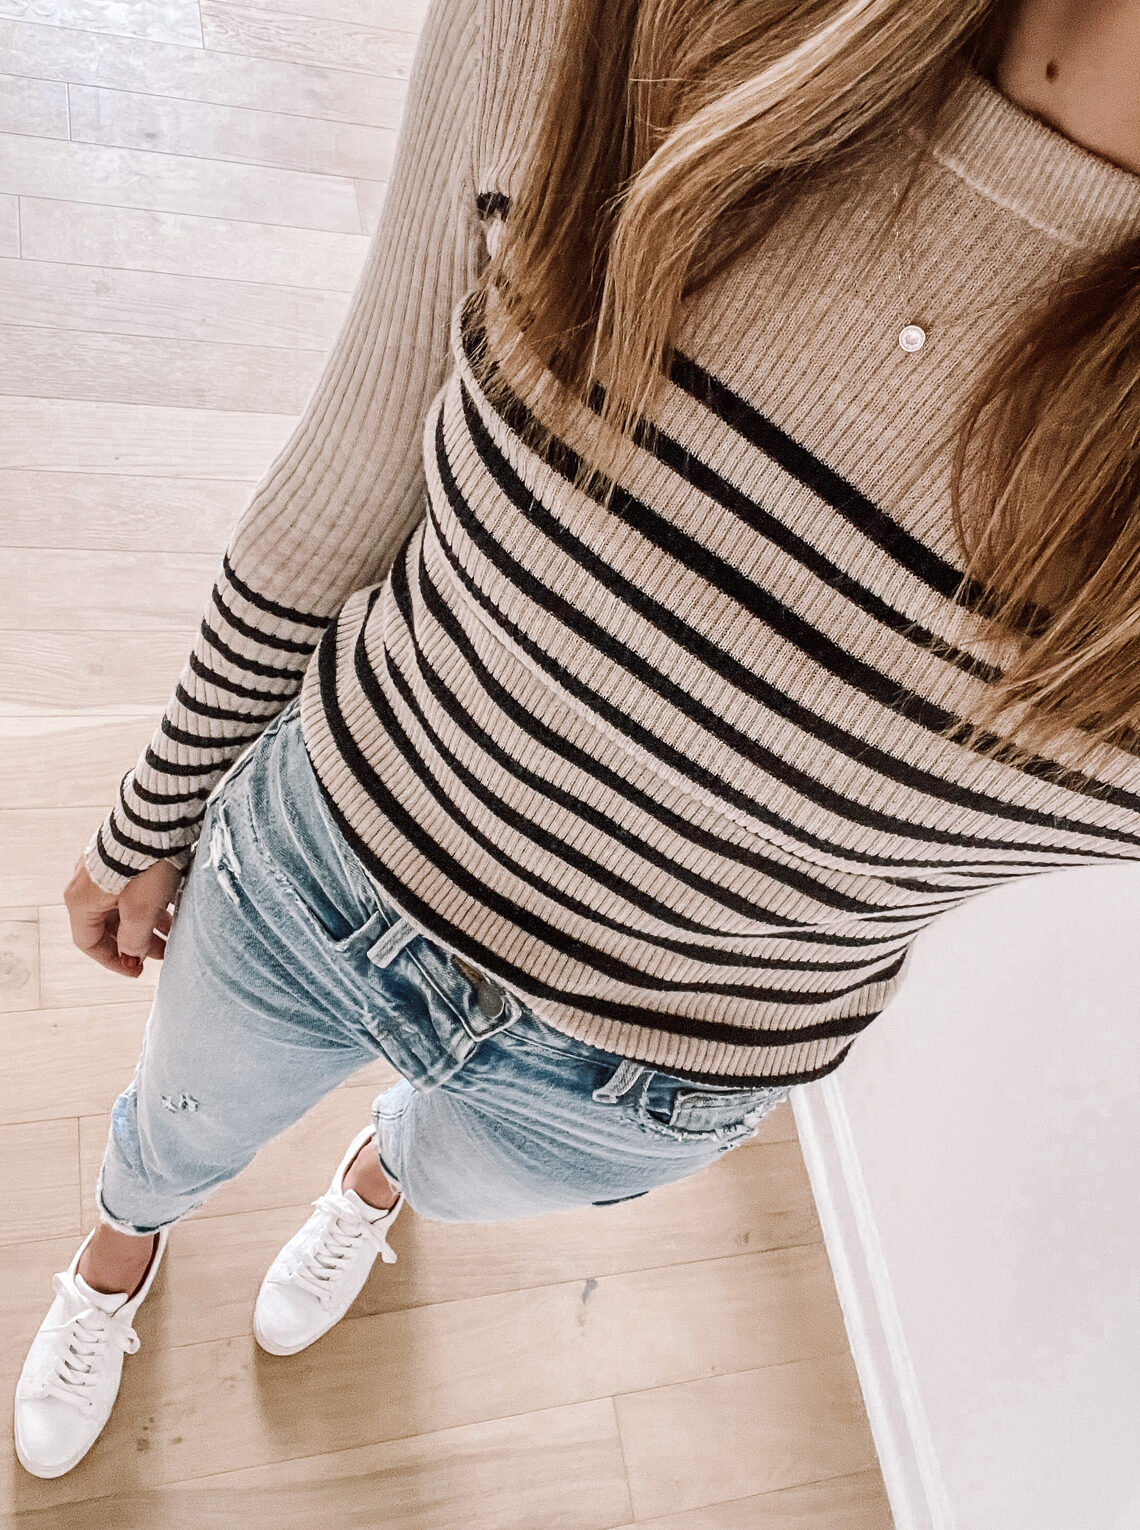 Fashion Jackson Wearing Rag and Bone Stripe Top Jeans White Sneakers Outfit